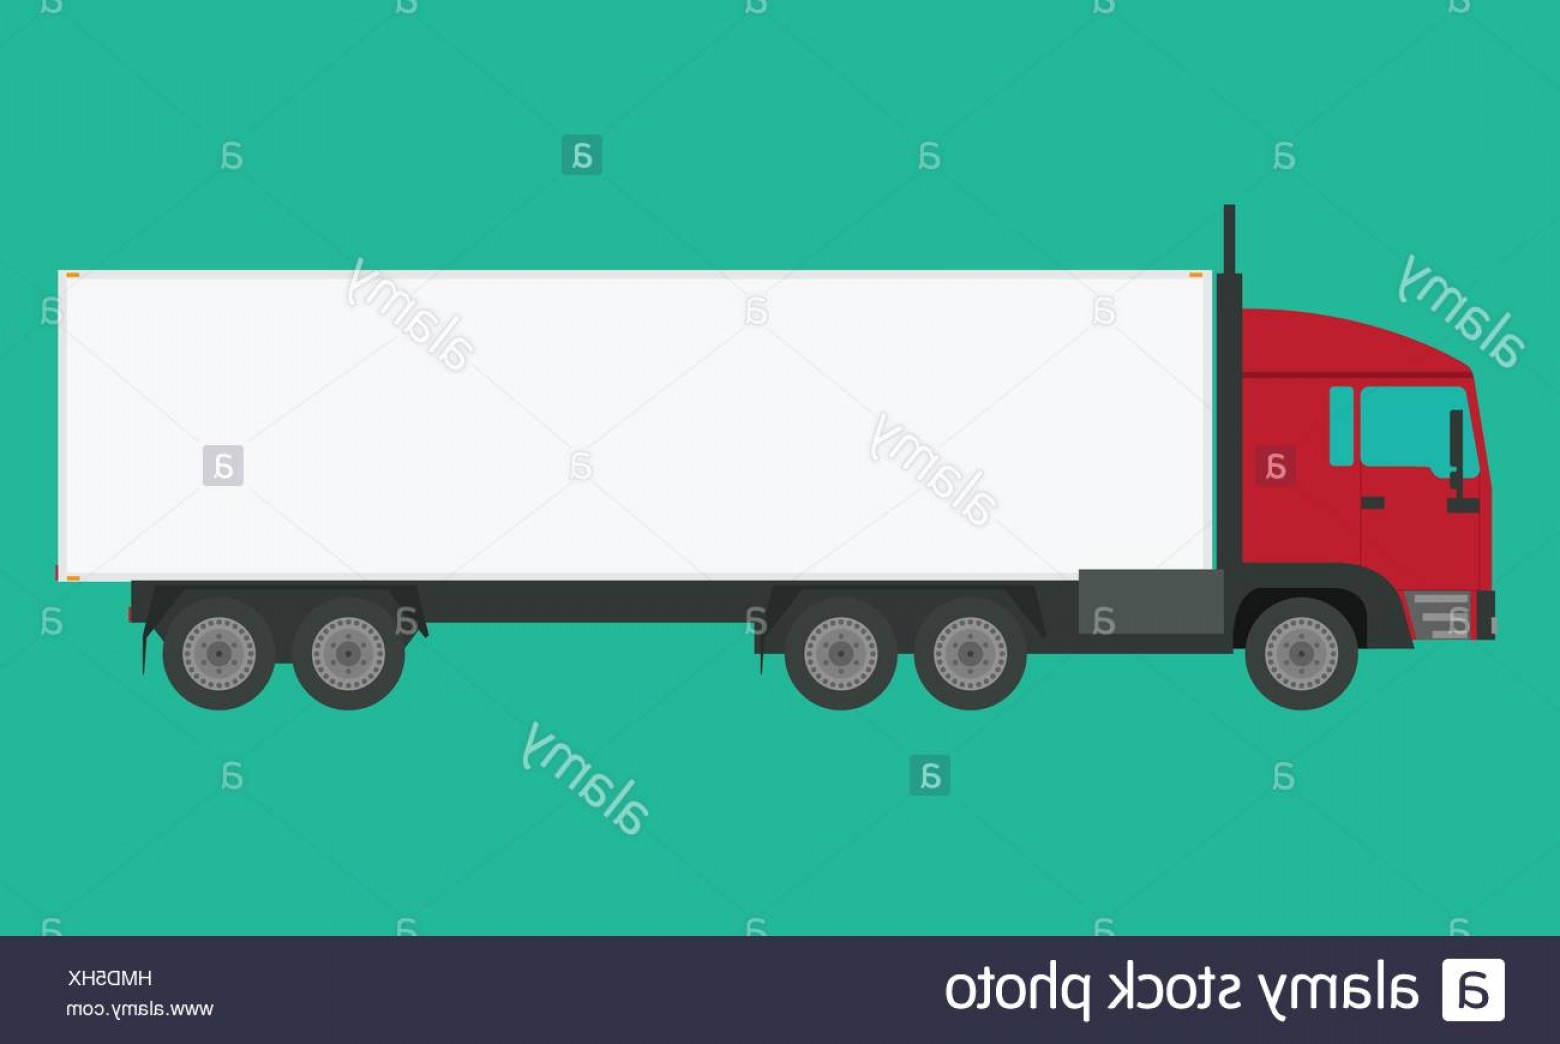 Vector Truck And Trailer Hauling: Stock Photo Long Vehicle Trailer Truck With Flat And Solid Color Design Illustrated